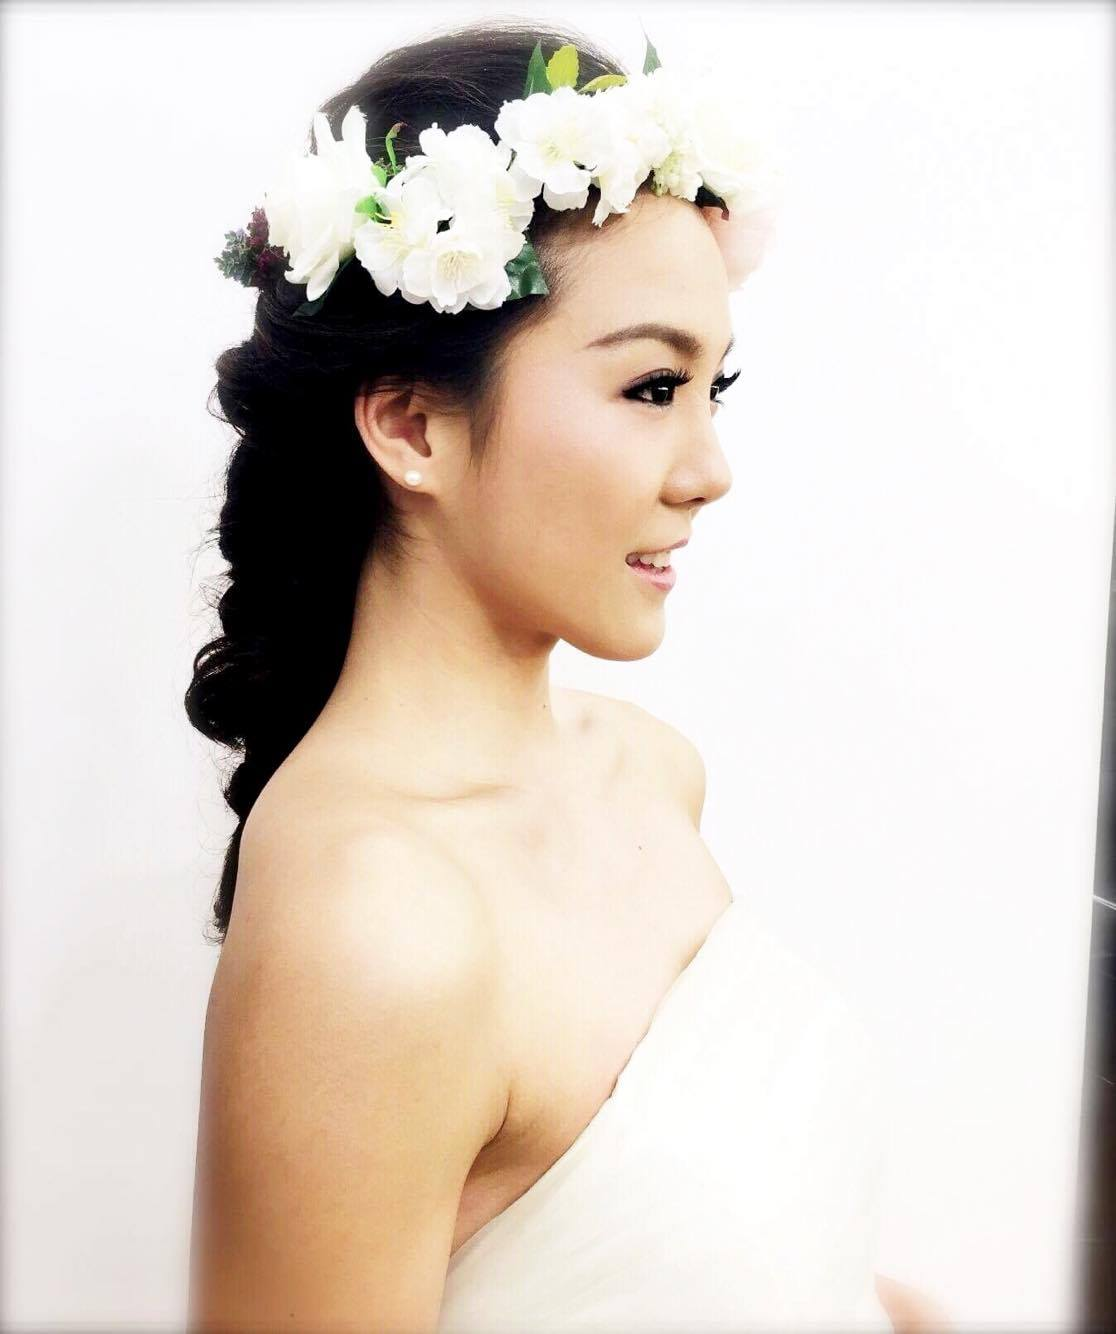 T J Kong Ride The Bomb: Create Your Own Bridal Book